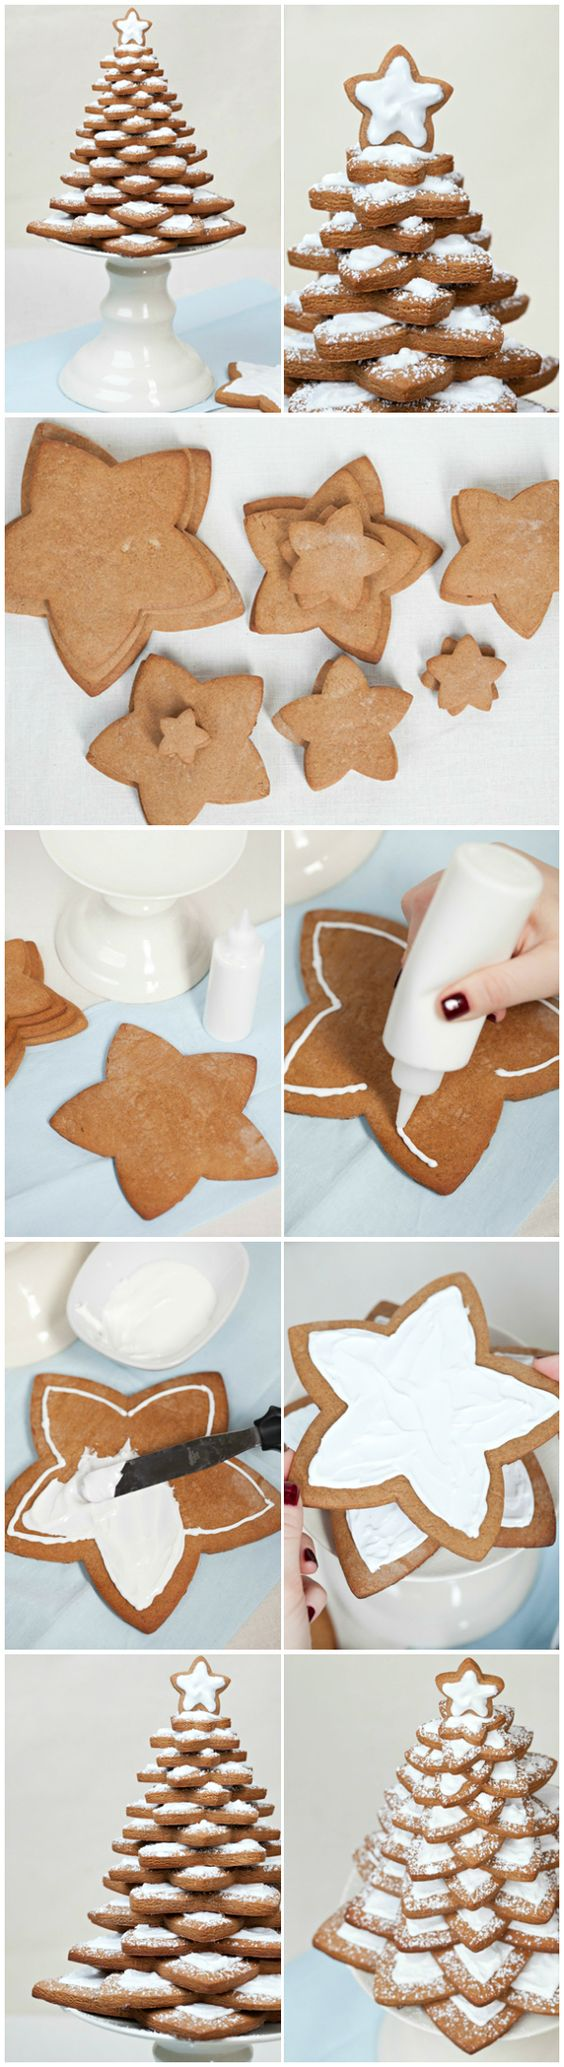 Recipe ● Tutorial ● Gingerbread Tree: